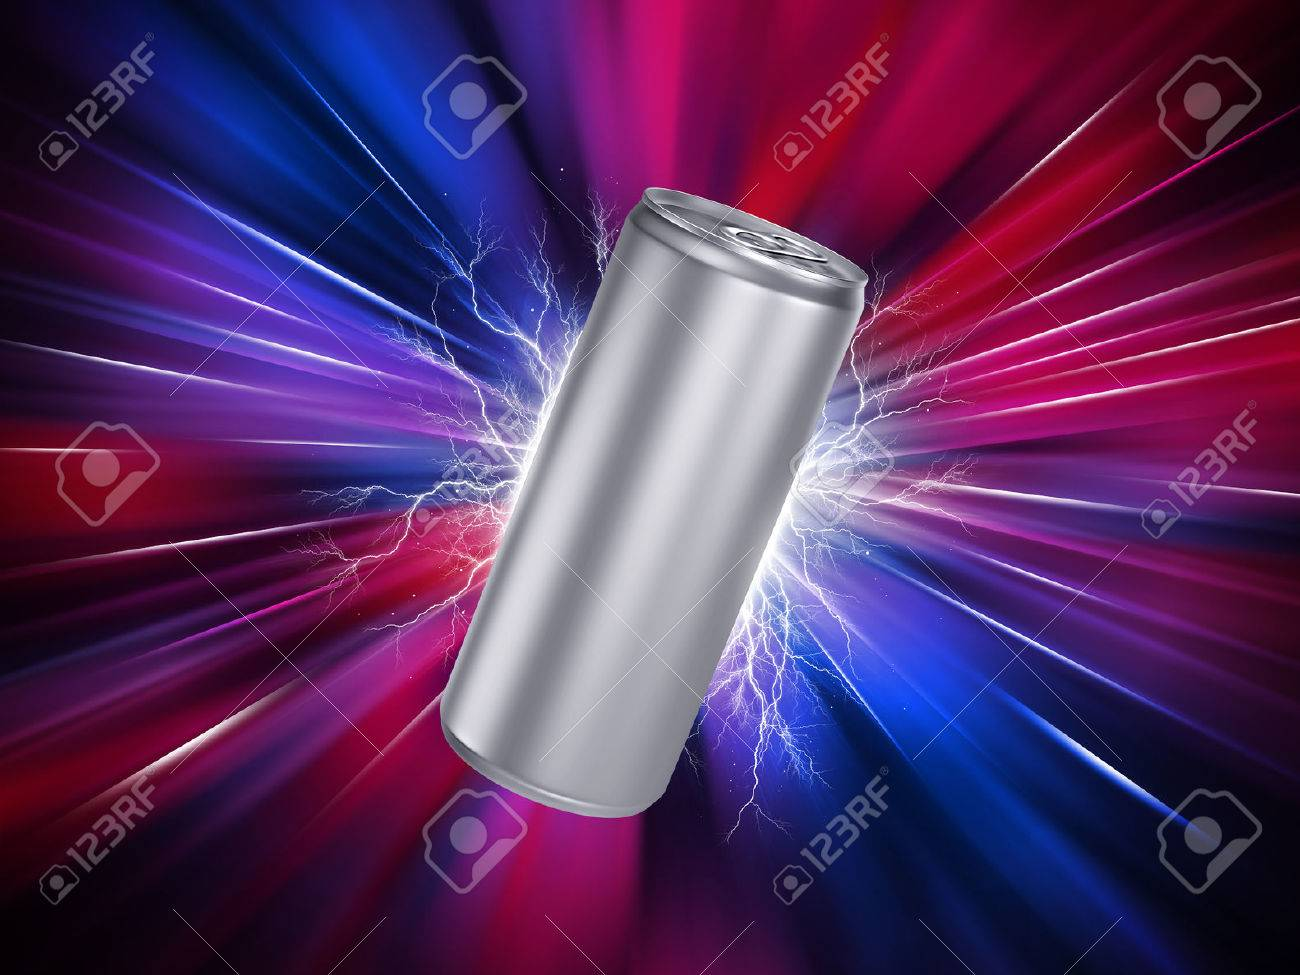 Energy Drink Can Template - 51329344